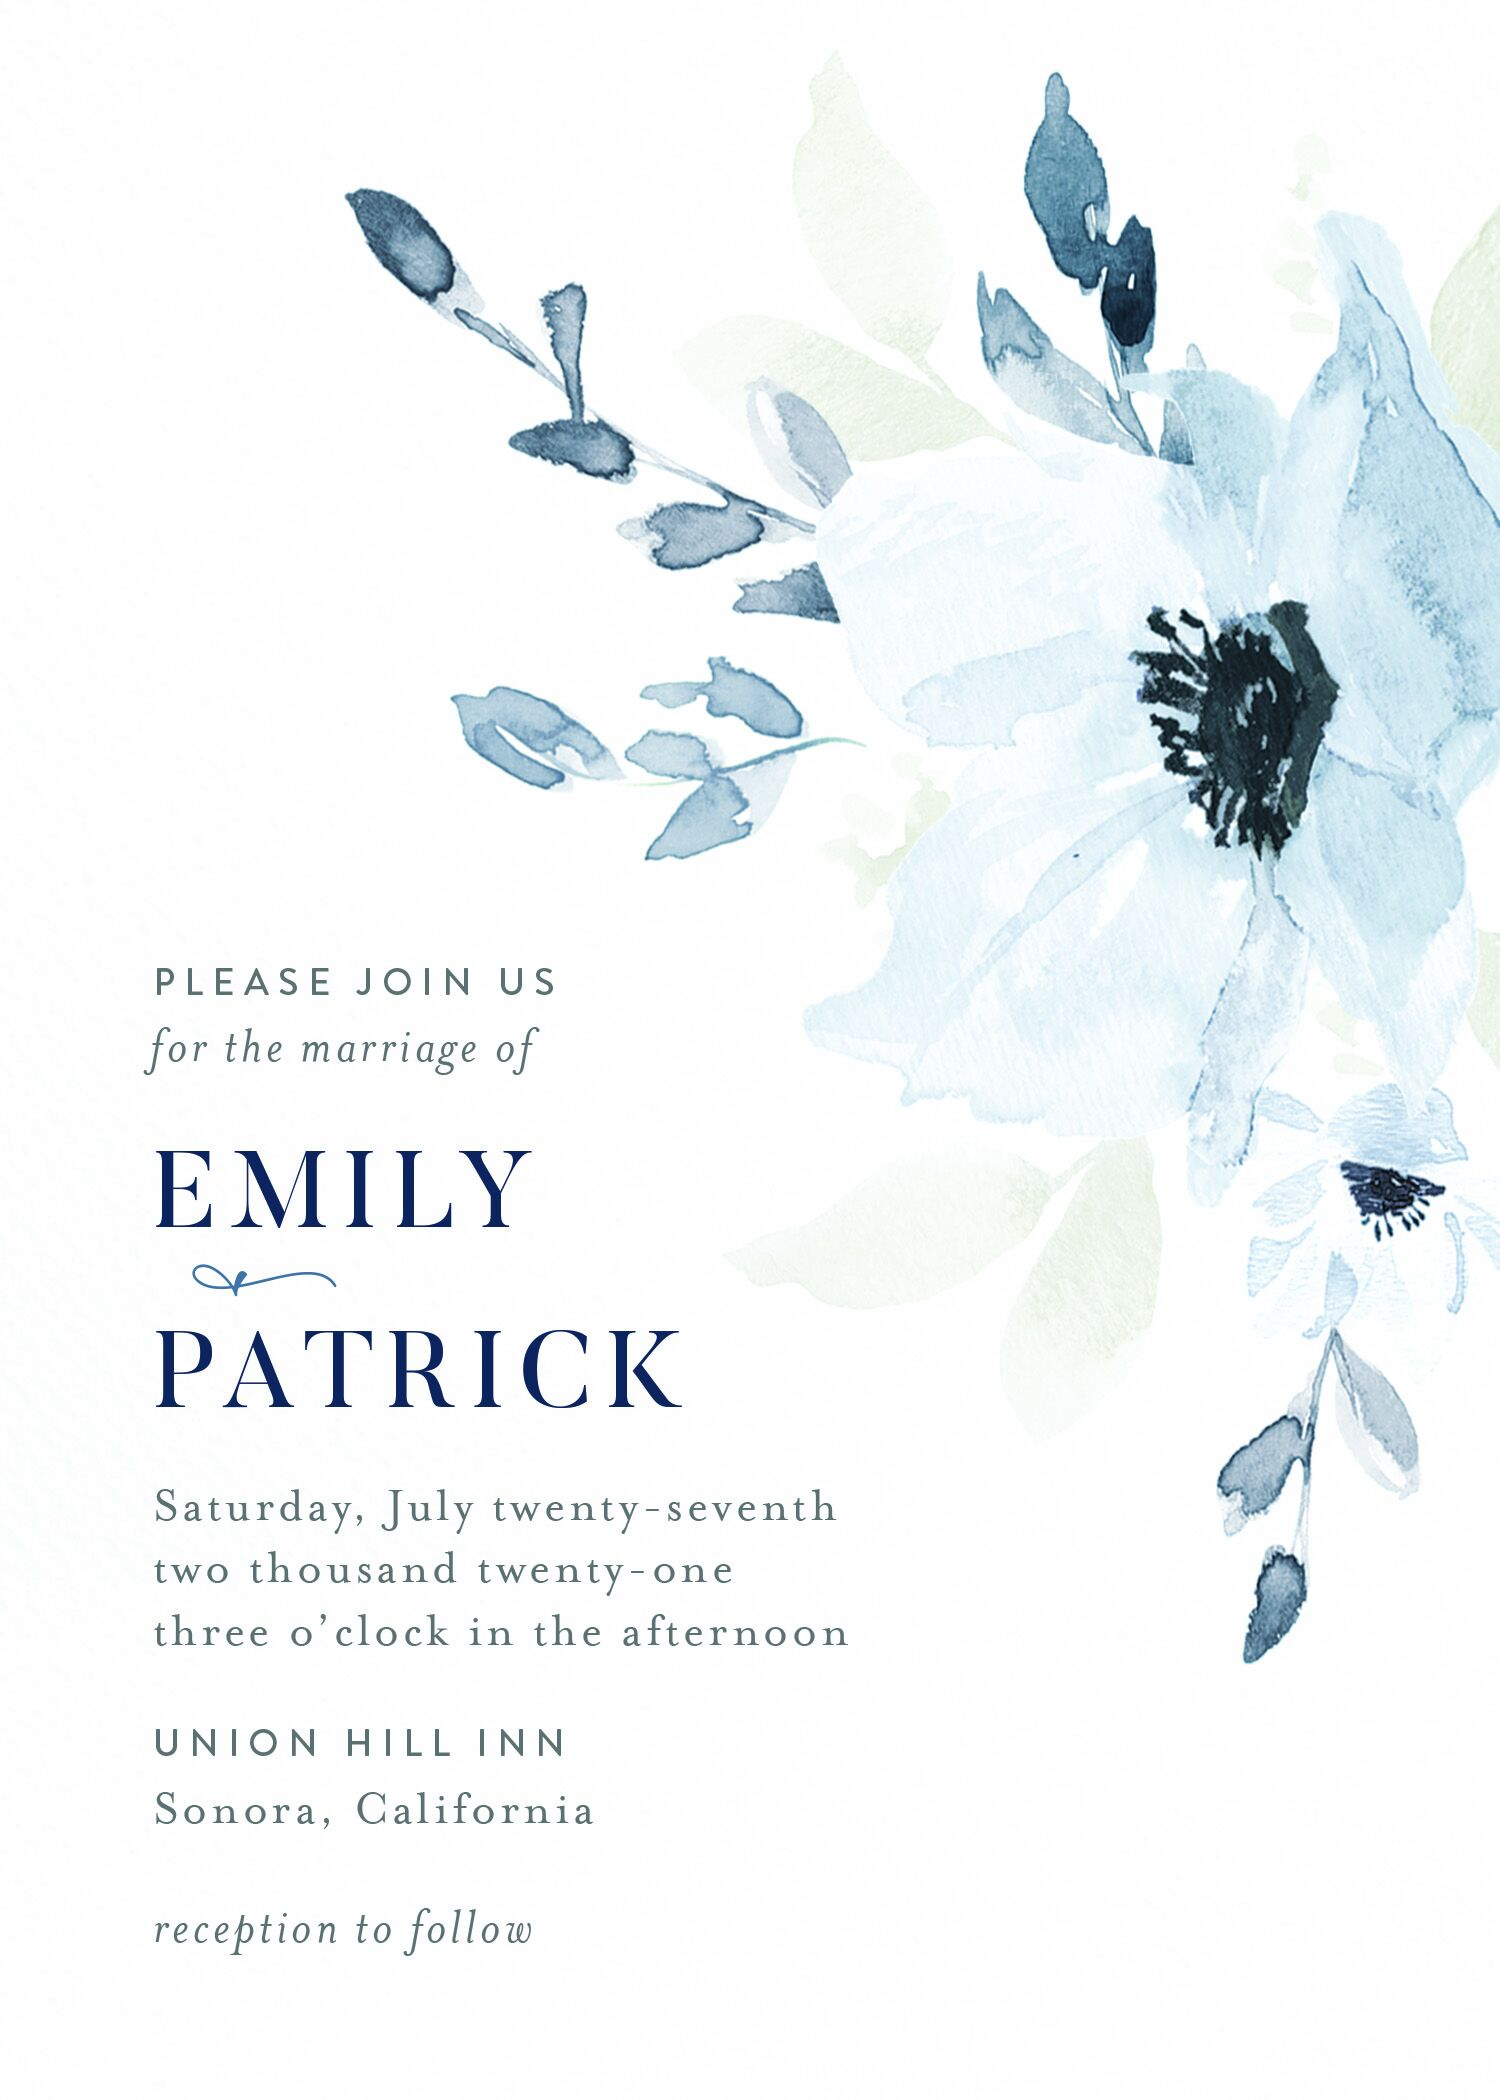 Customizable wedding invitation featuring oversized, soft blue florals to the right and wedding info in modern fonts to the left.